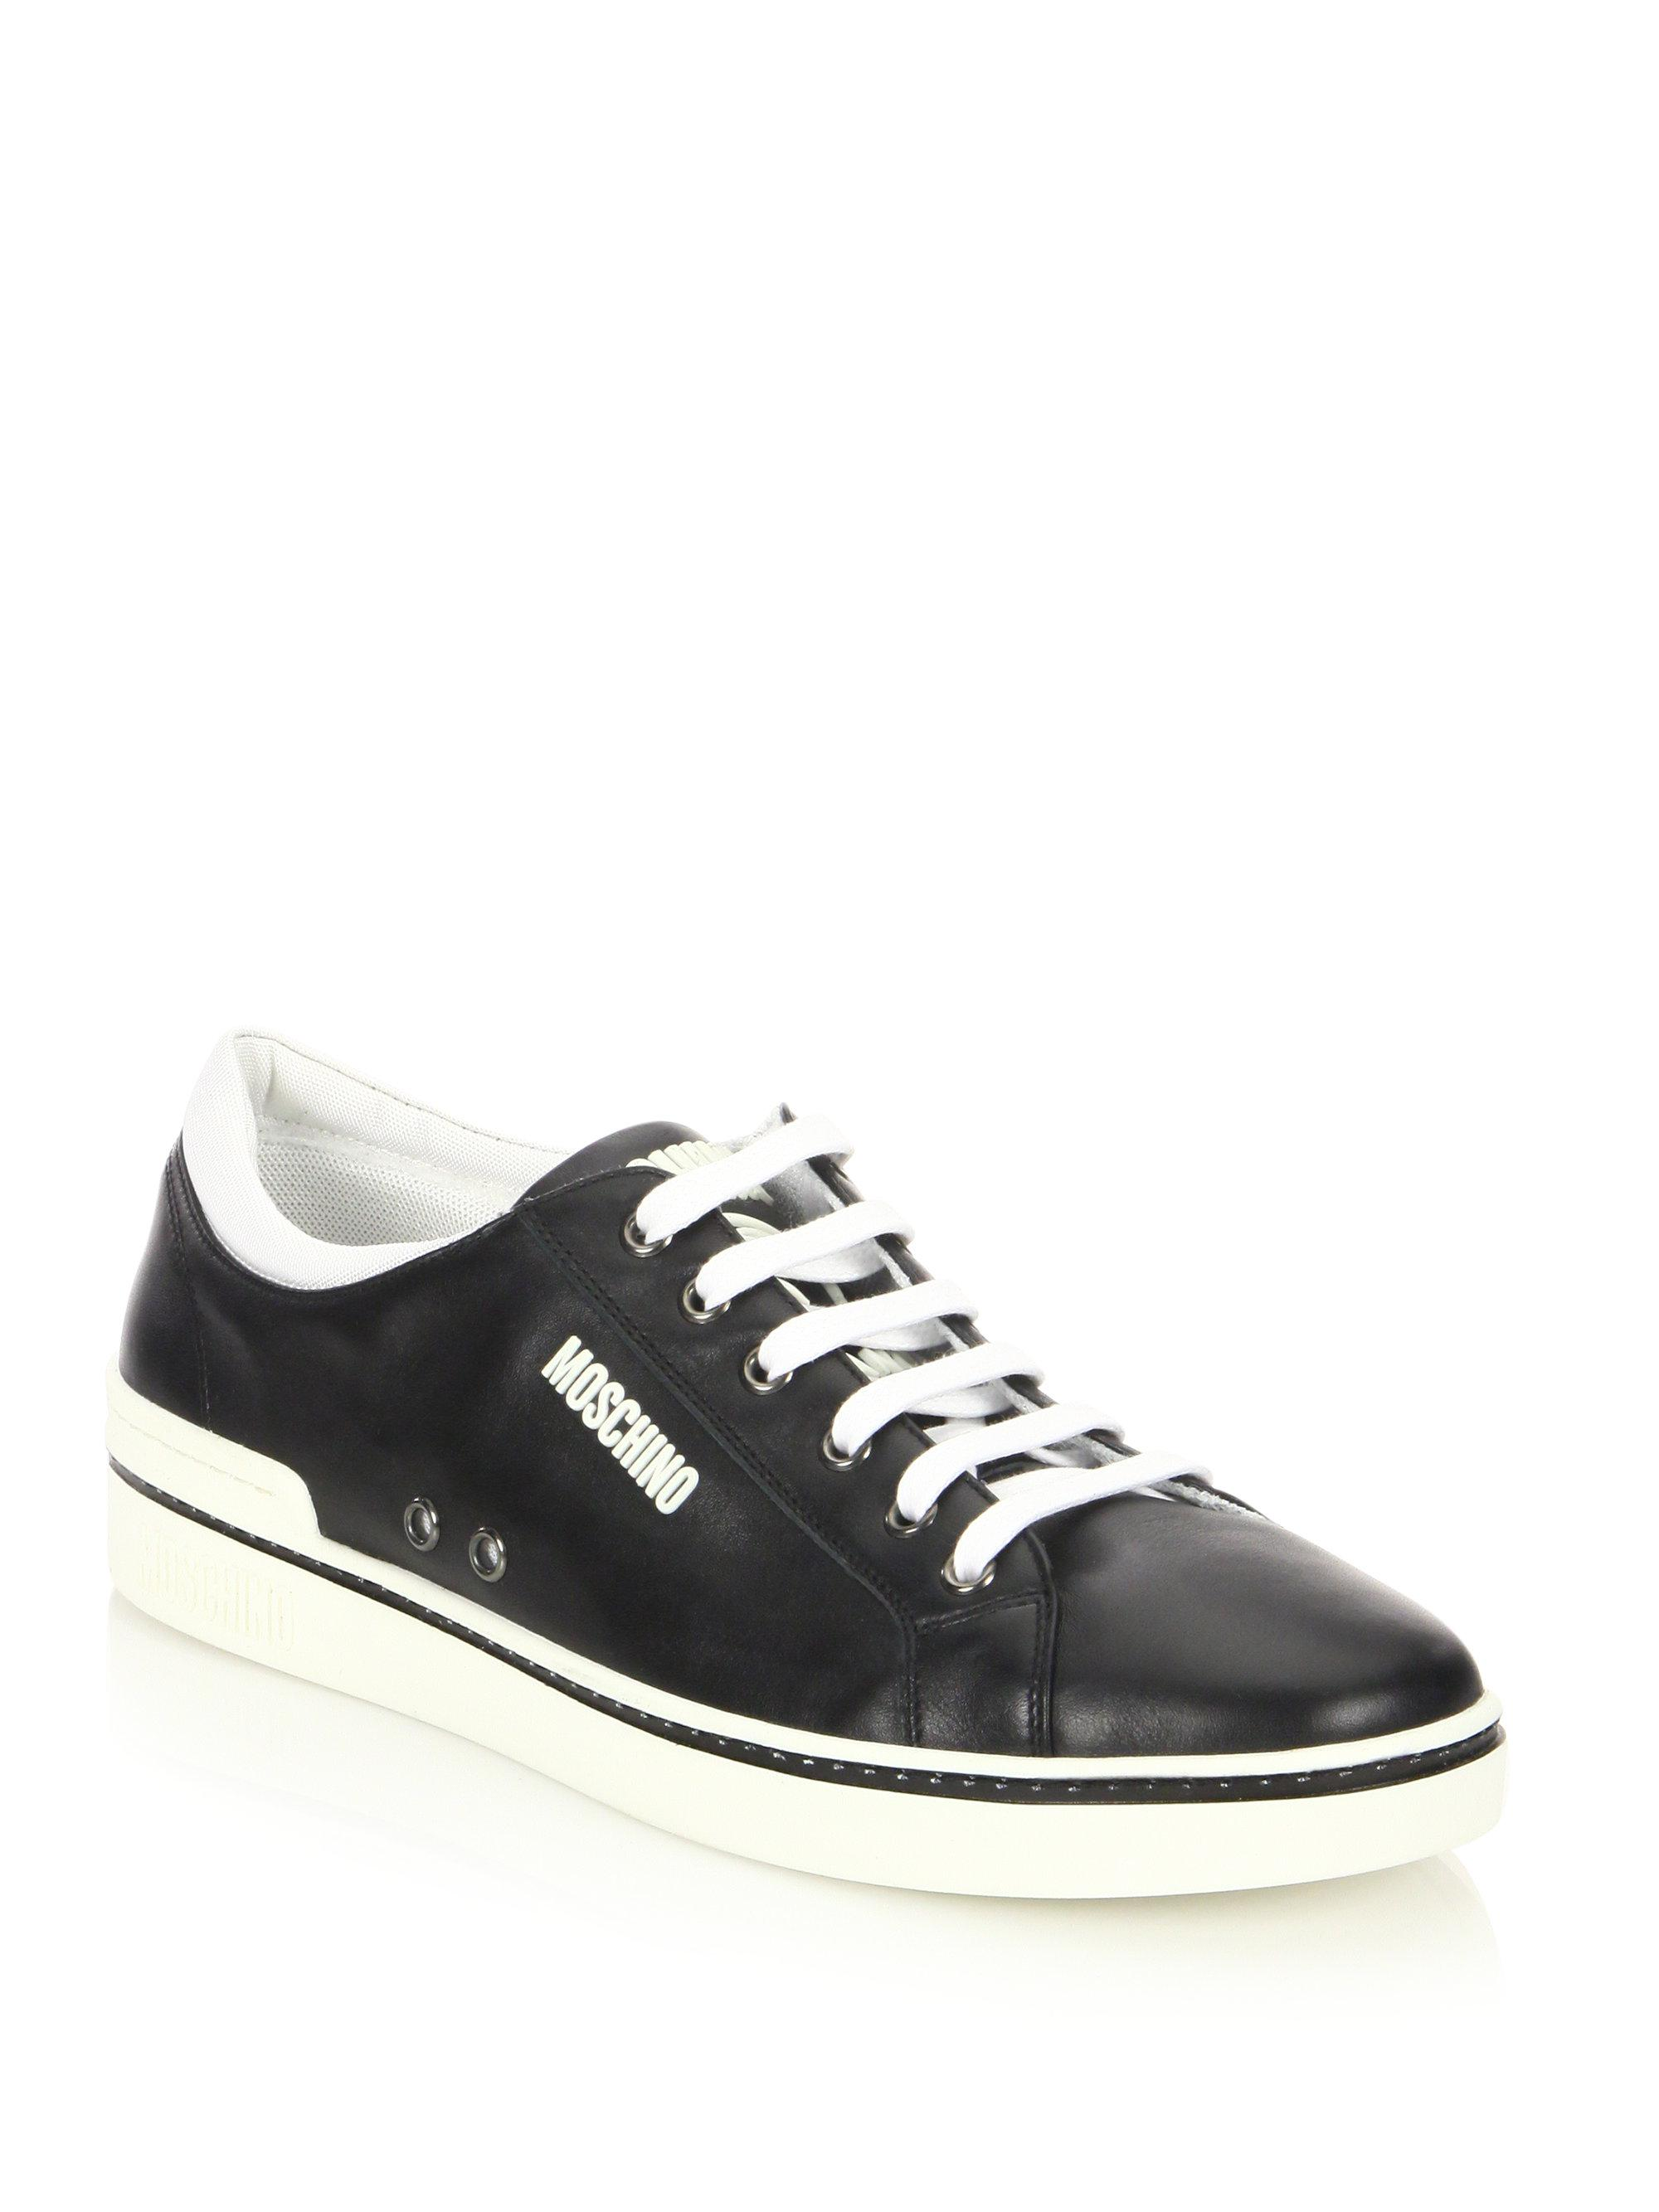 Moschino Contrast Leather Low-Top Sneakers 29ipw6G